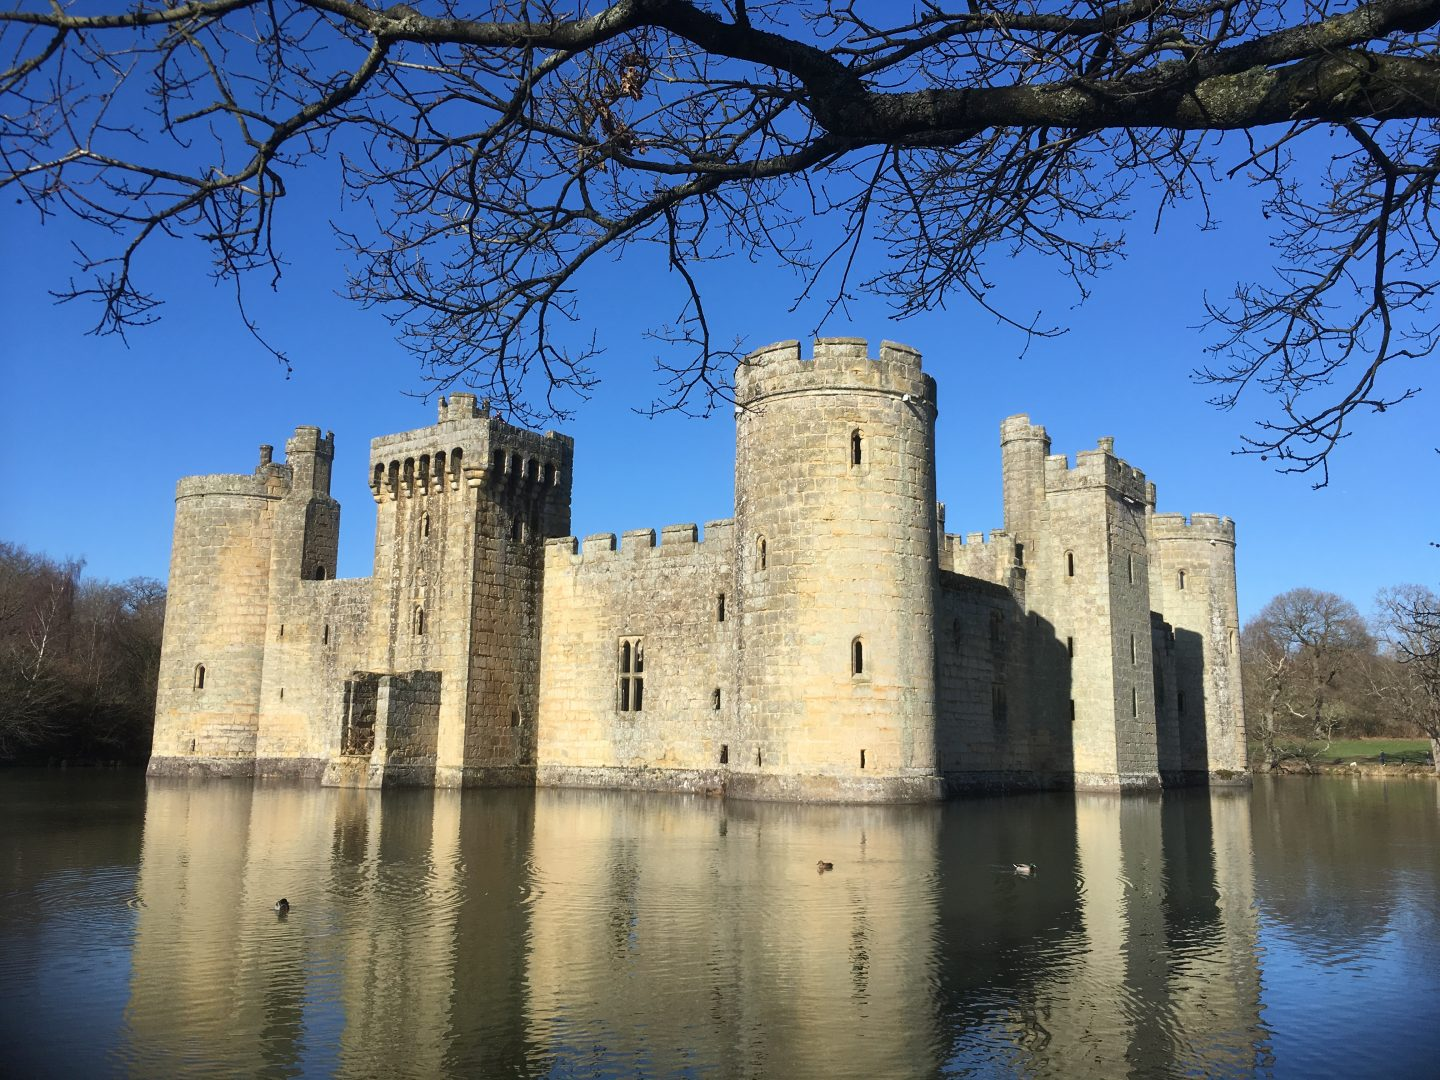 Visiting Bodiam Castle with kids